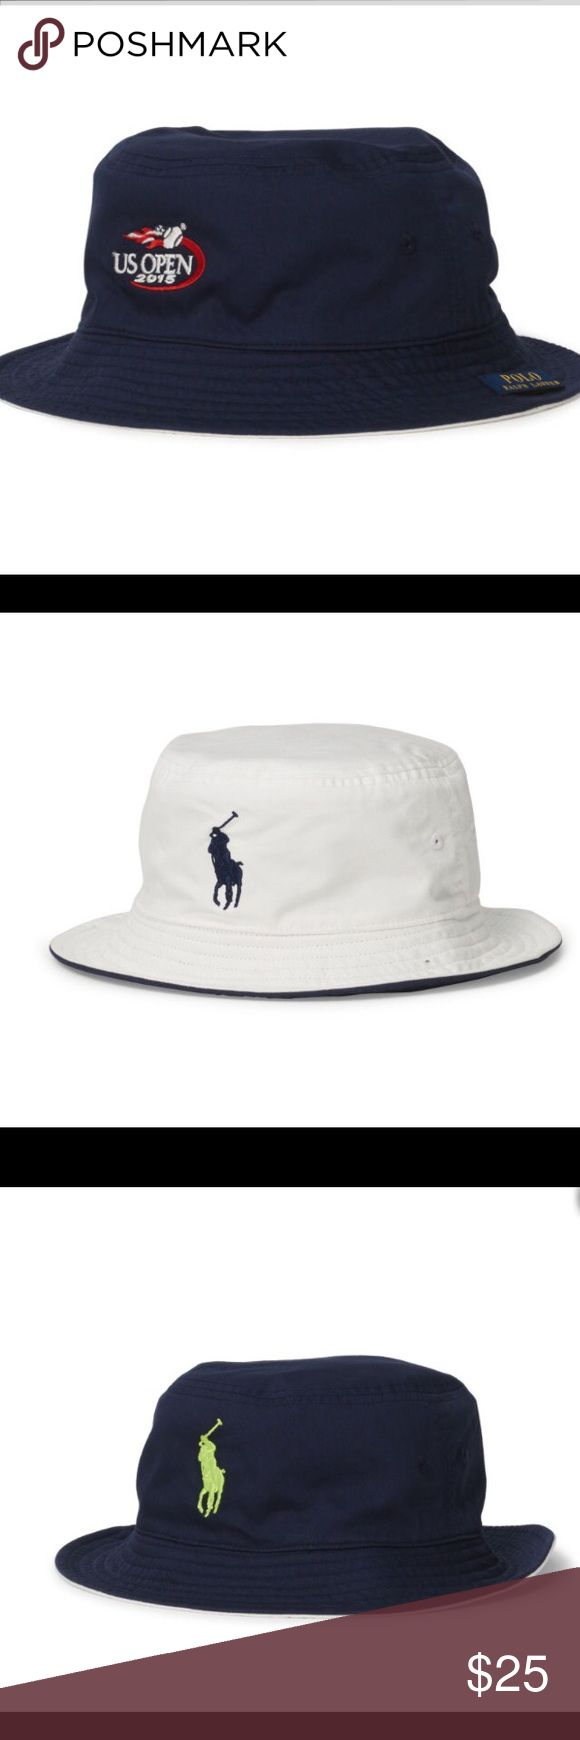 Polo Ralph Lauren reversible bucket hat U.S. Open A great looking VERY light REVERSIBLE bucket hat. You can flip it into navy or white colors, depending on your attire and mood Polo by Ralph Lauren Accessories Hats